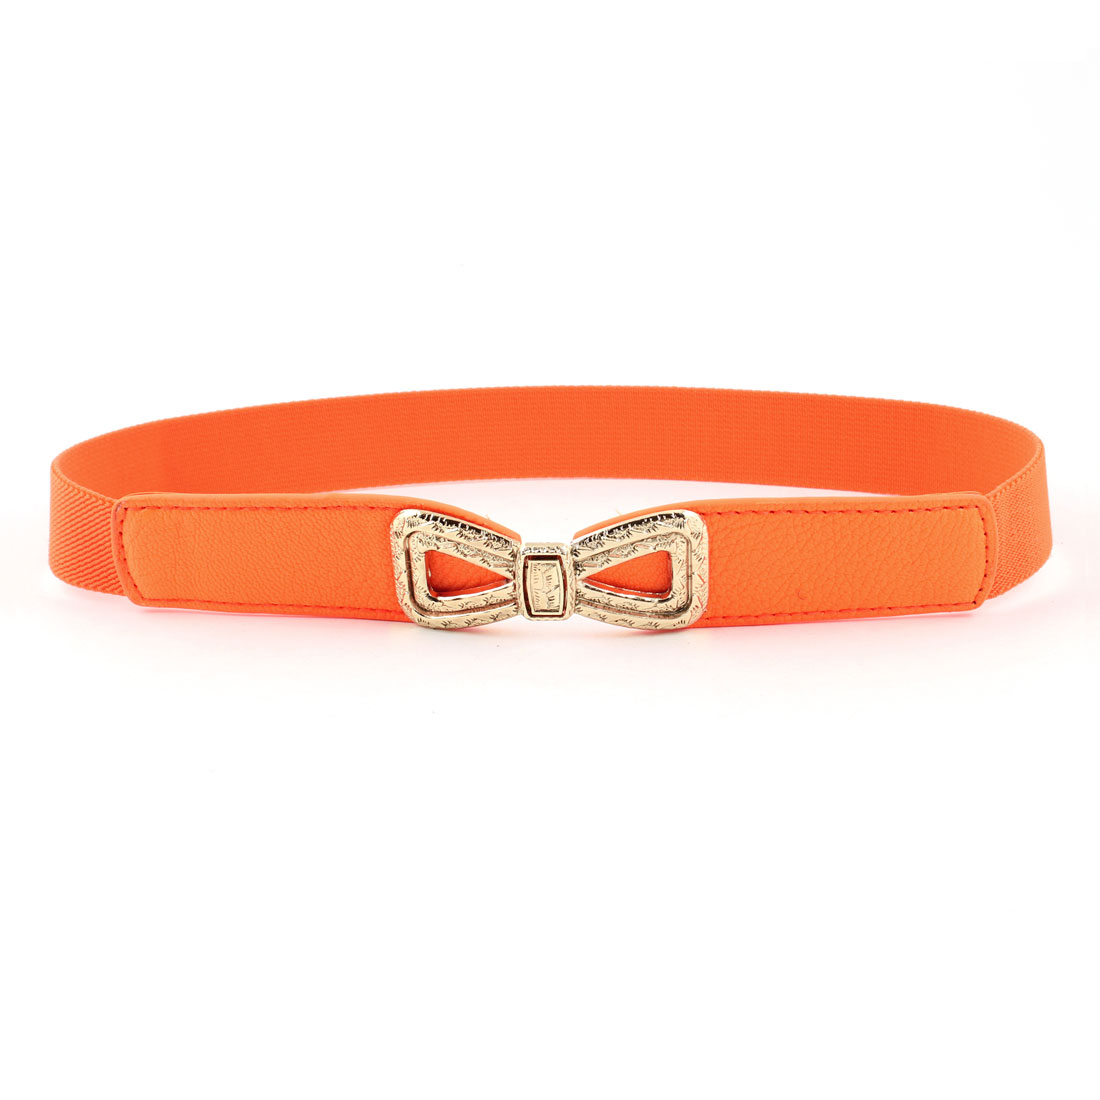 Ladies Embossment Interlock Buckle Stretchy Faux Leather Waist Belt Orange